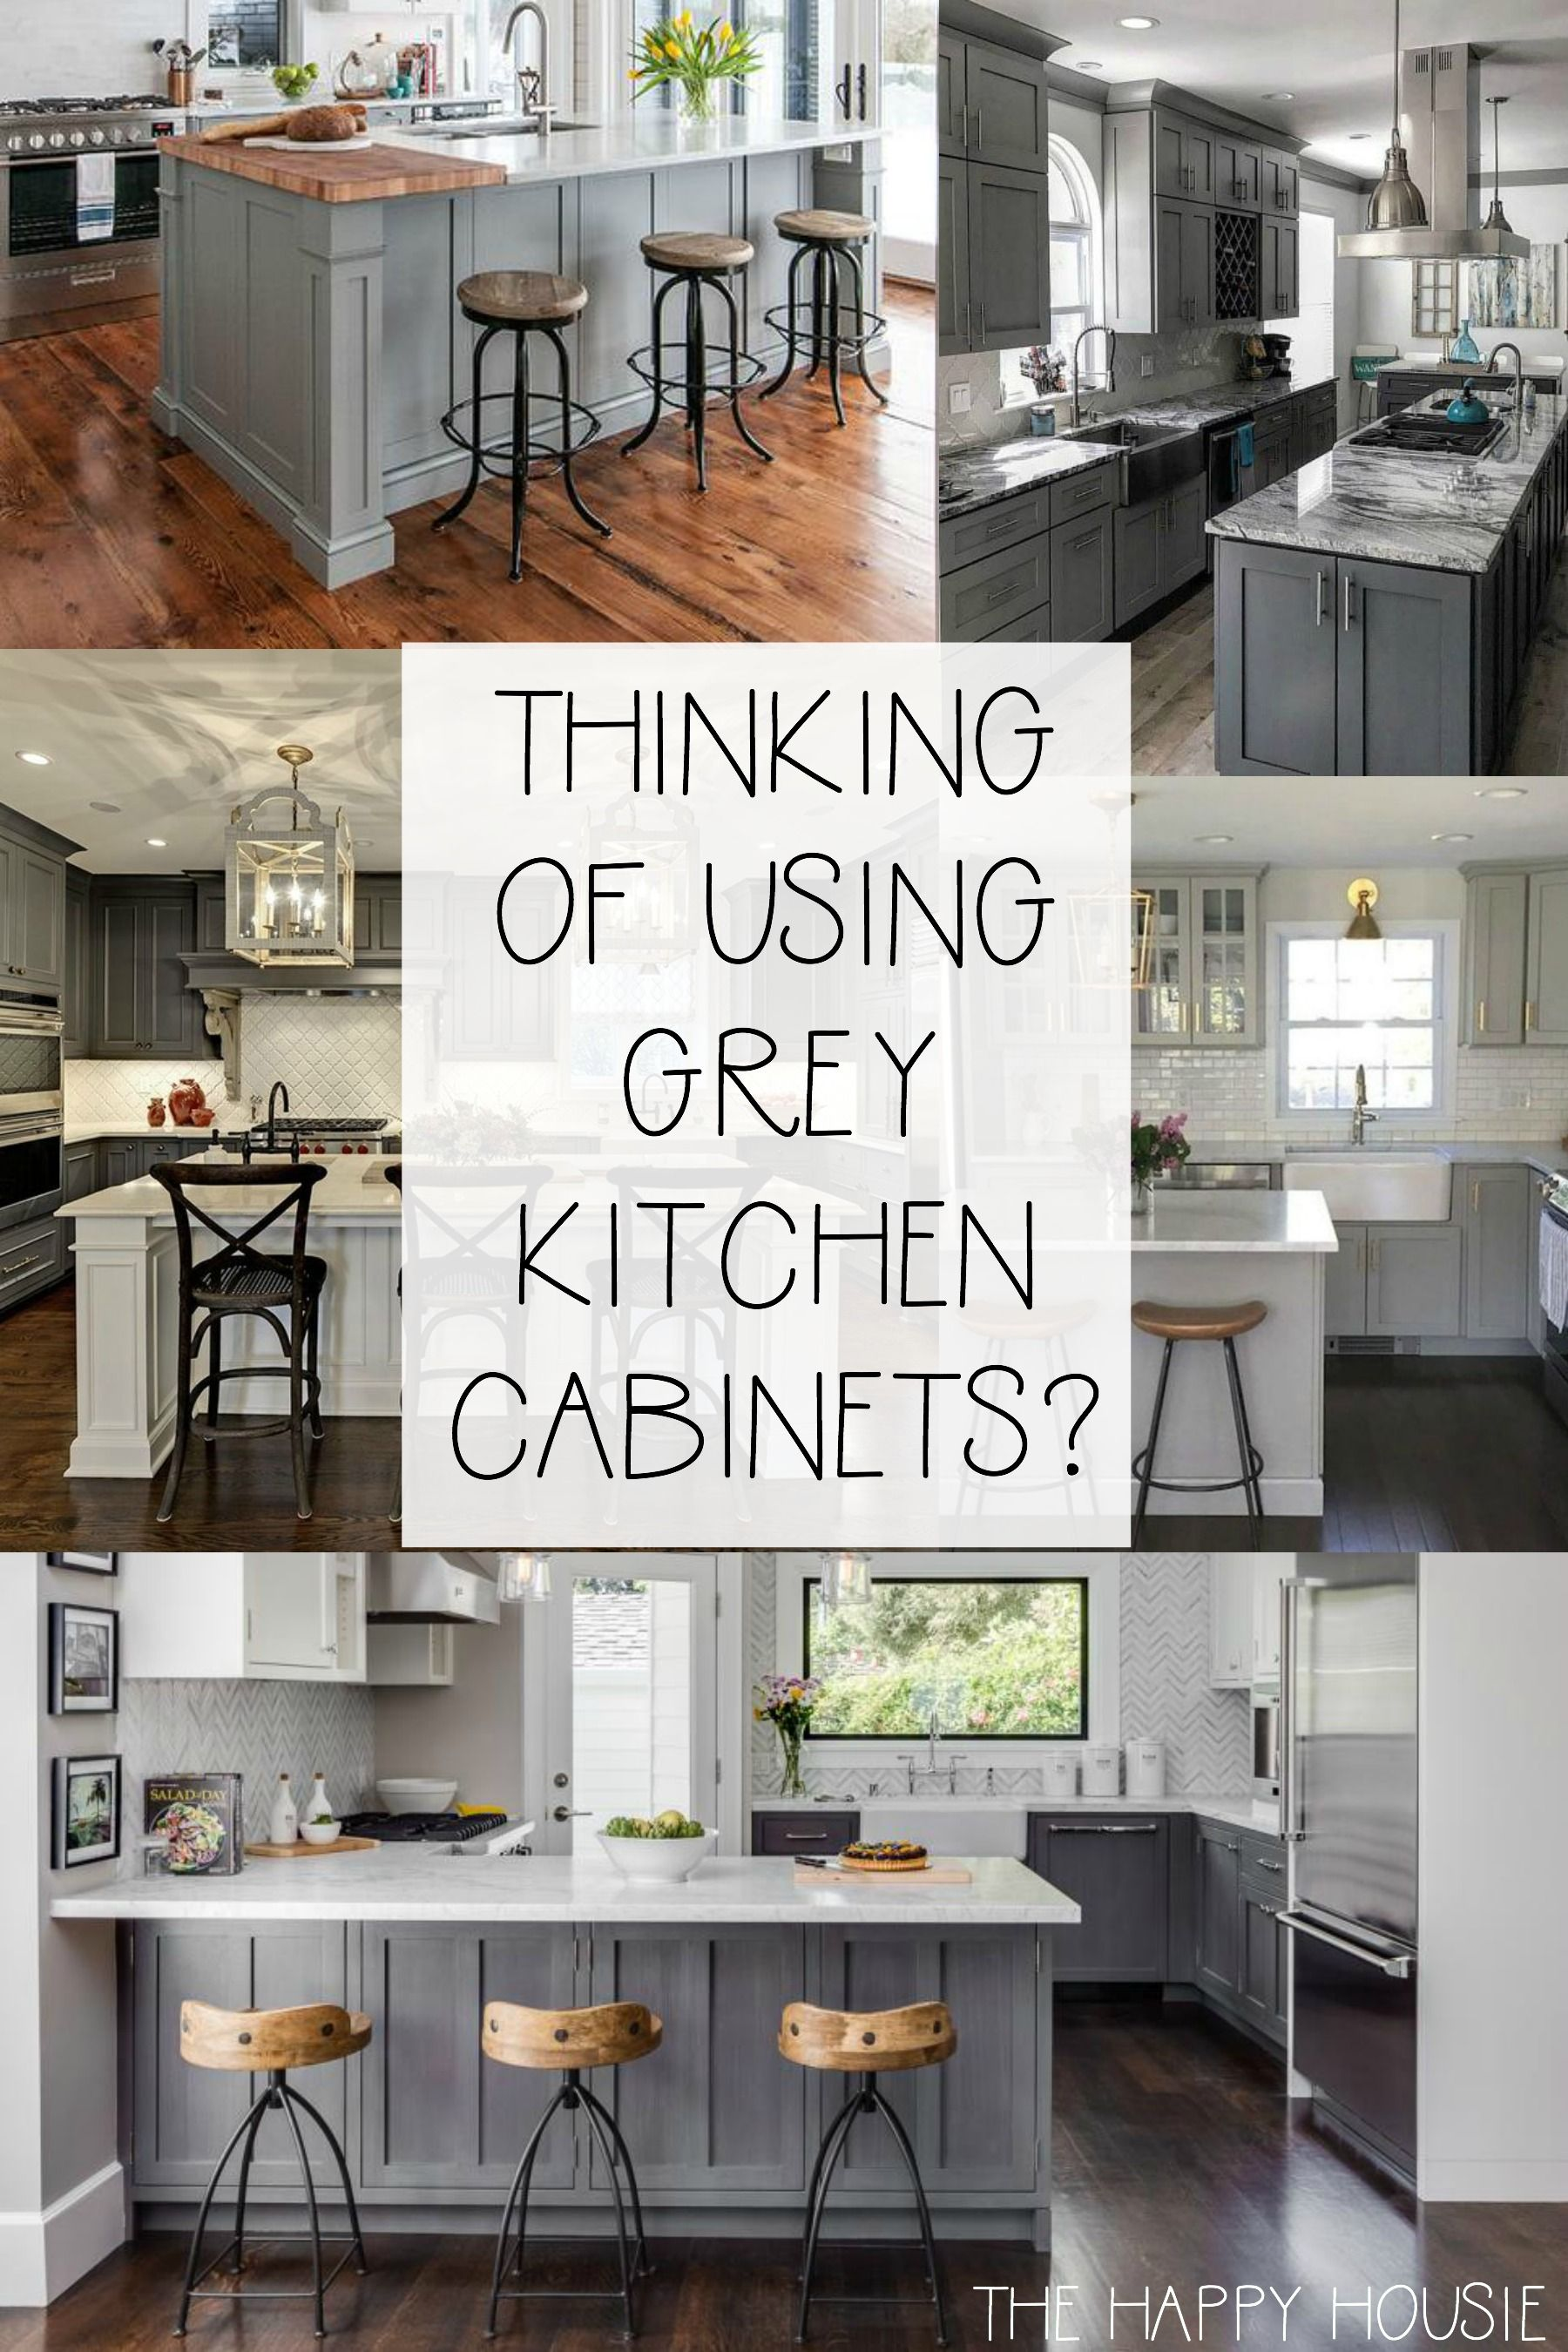 20 Fabulous Kitchens Featuring Grey Kitchen Cabinets | The Happy Housie